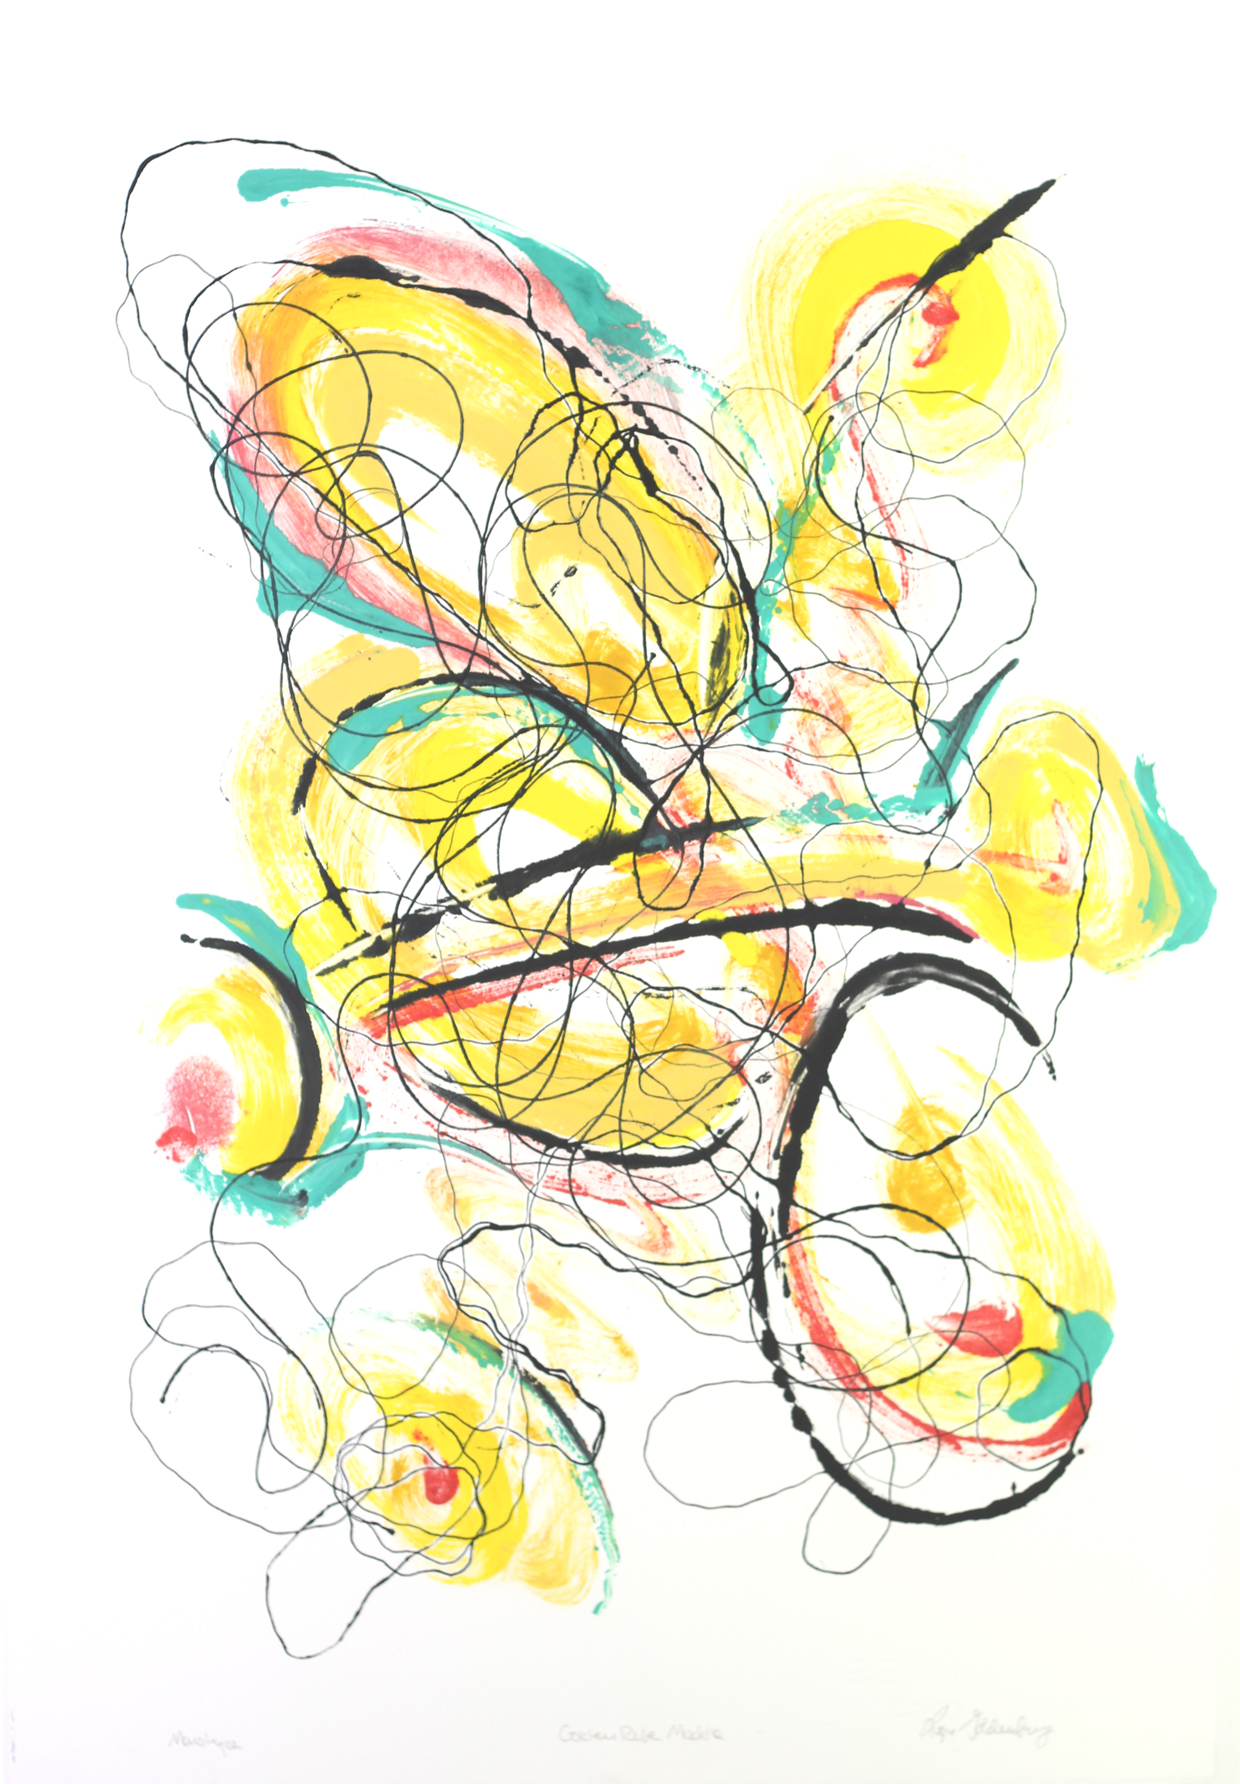 Roger Goldenberg's Visual Jazz Monotype Gallery D has prints pulled from shaped plates. Their style riffs on Goldenberg's shaped visual jazz paintings Golden Rule Muddle